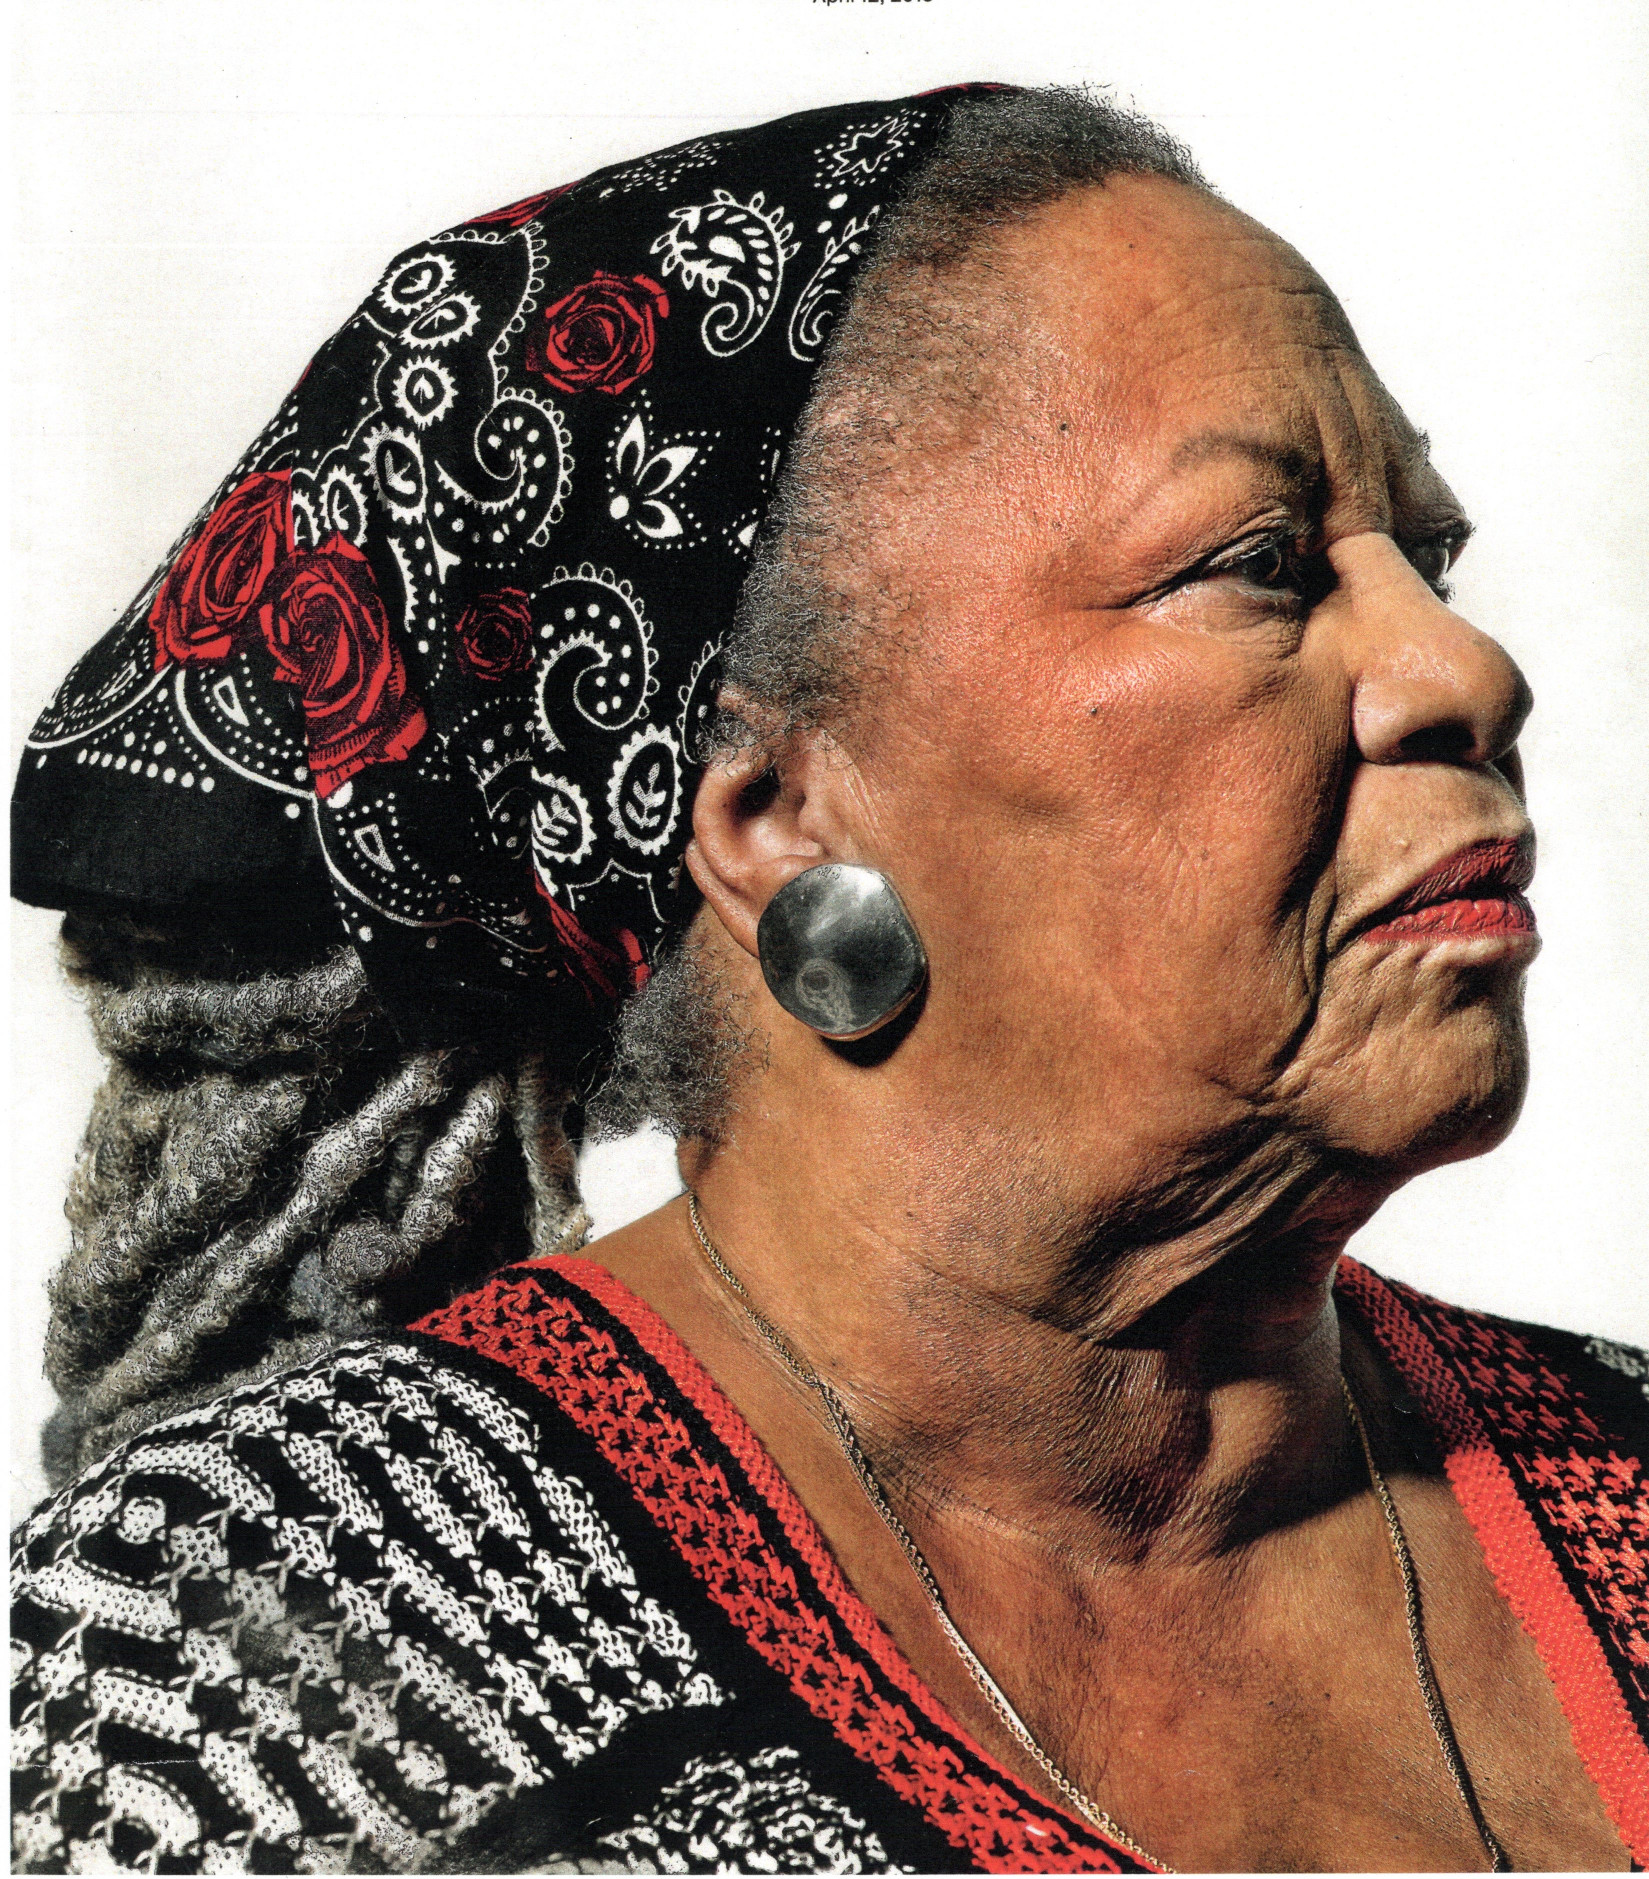 Save the date for Toni Morrison: A Retrospective opening May 8th